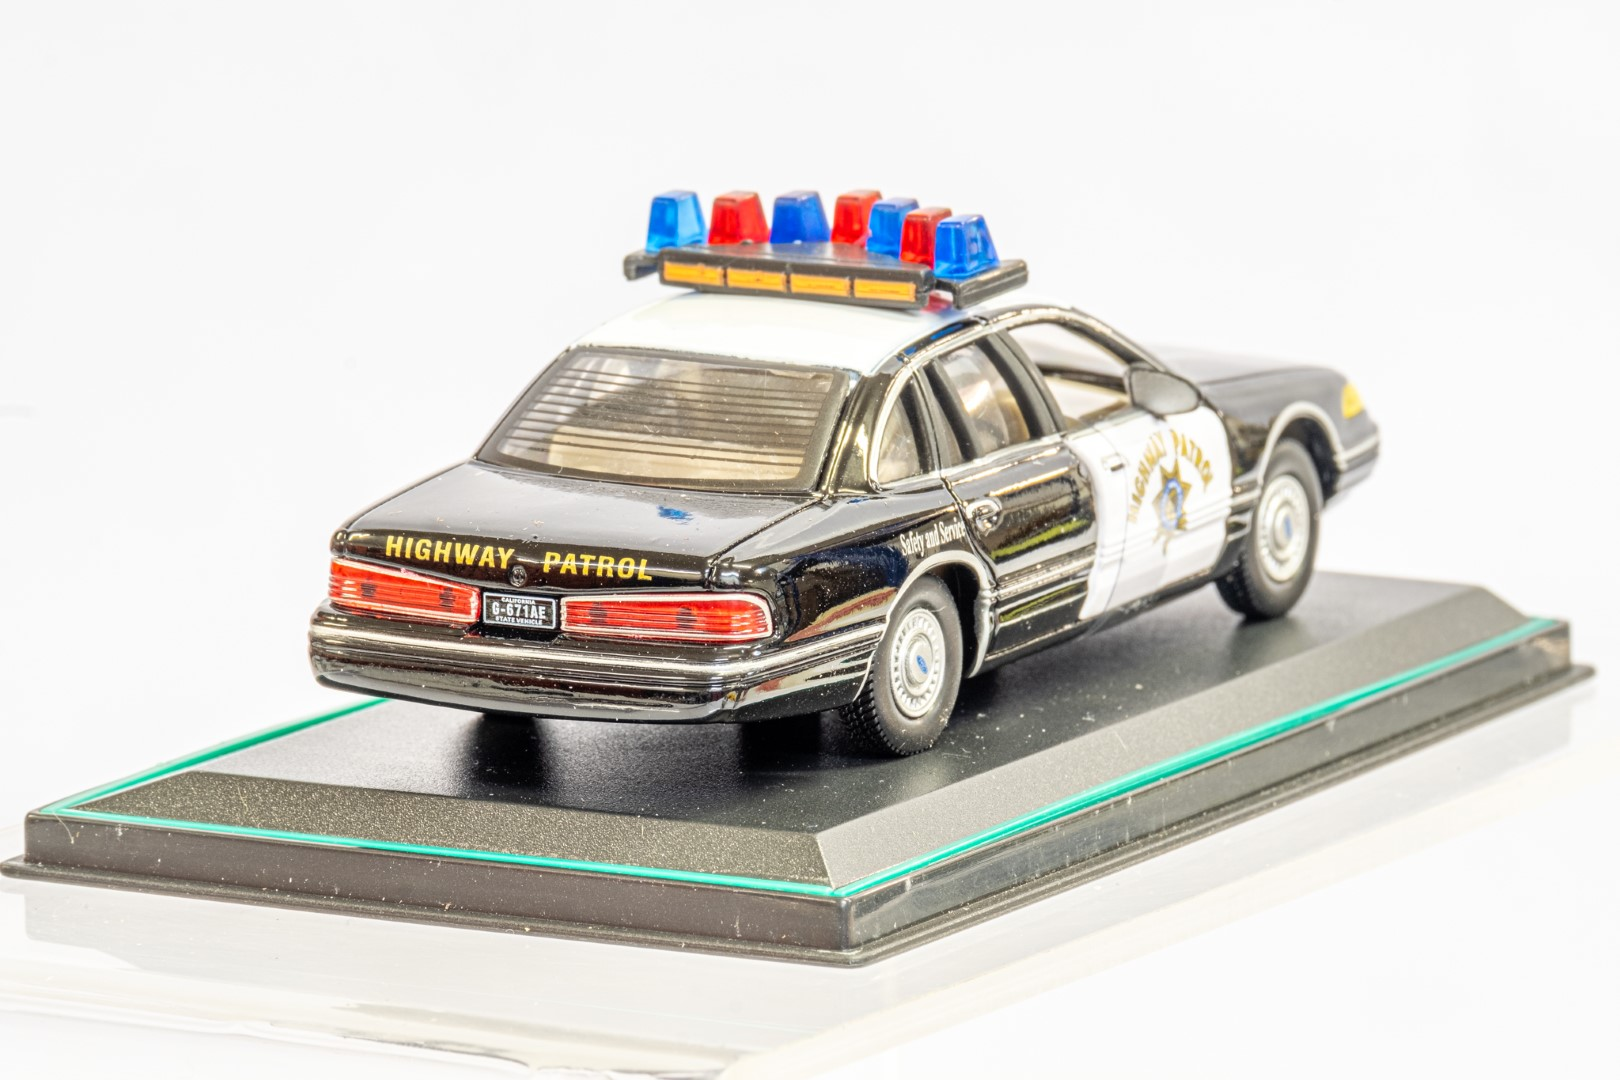 2 x American Police Cars - Image 7 of 12